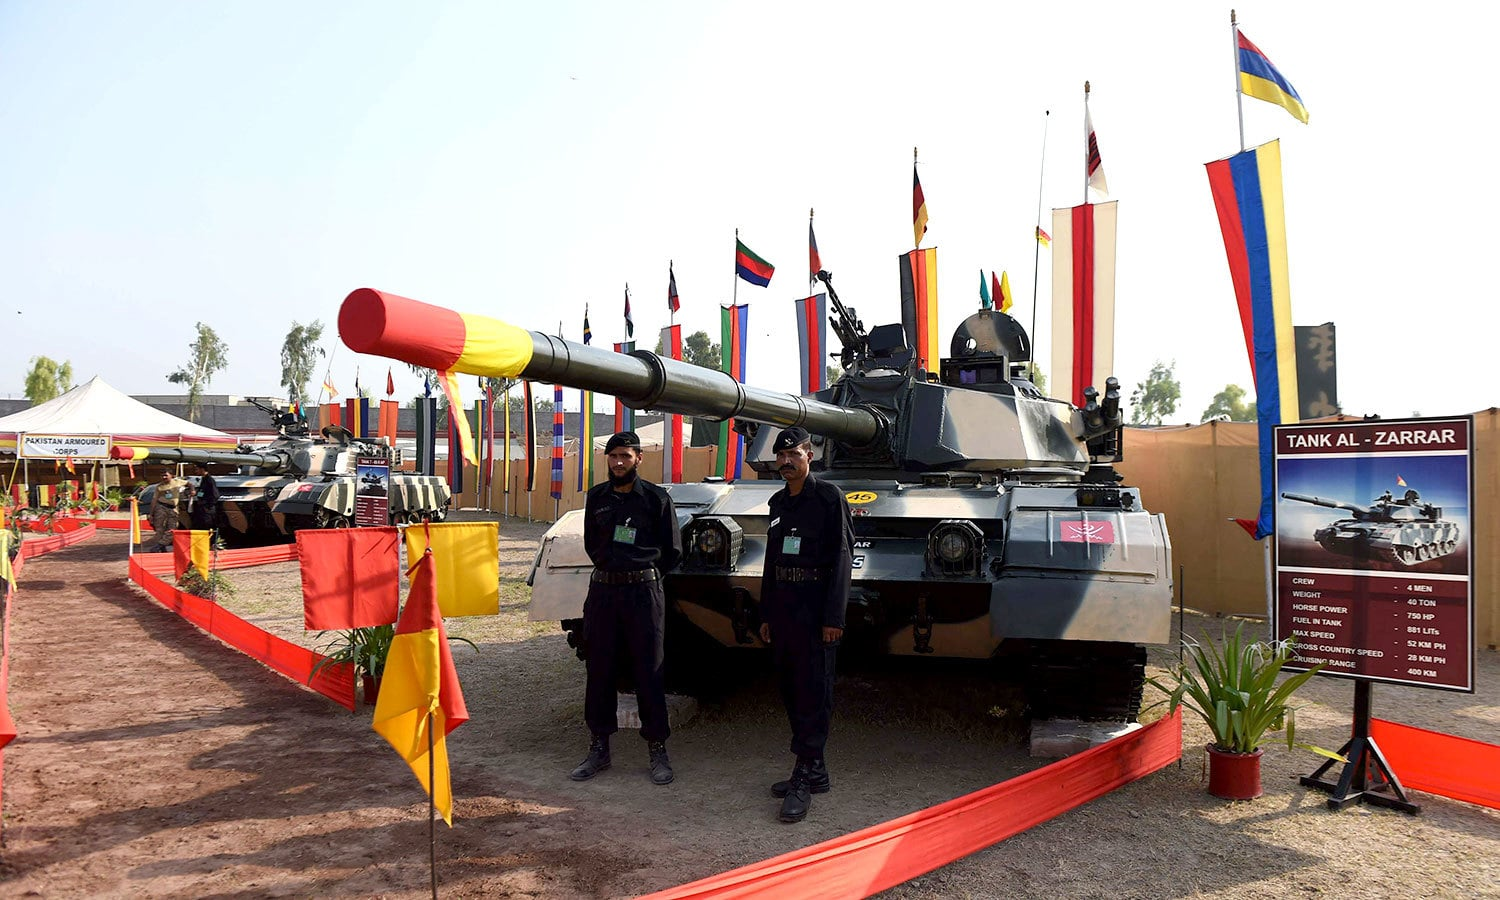 An Al-Zarrar tank at an exhibition organised by Pakistan Army. -AFP